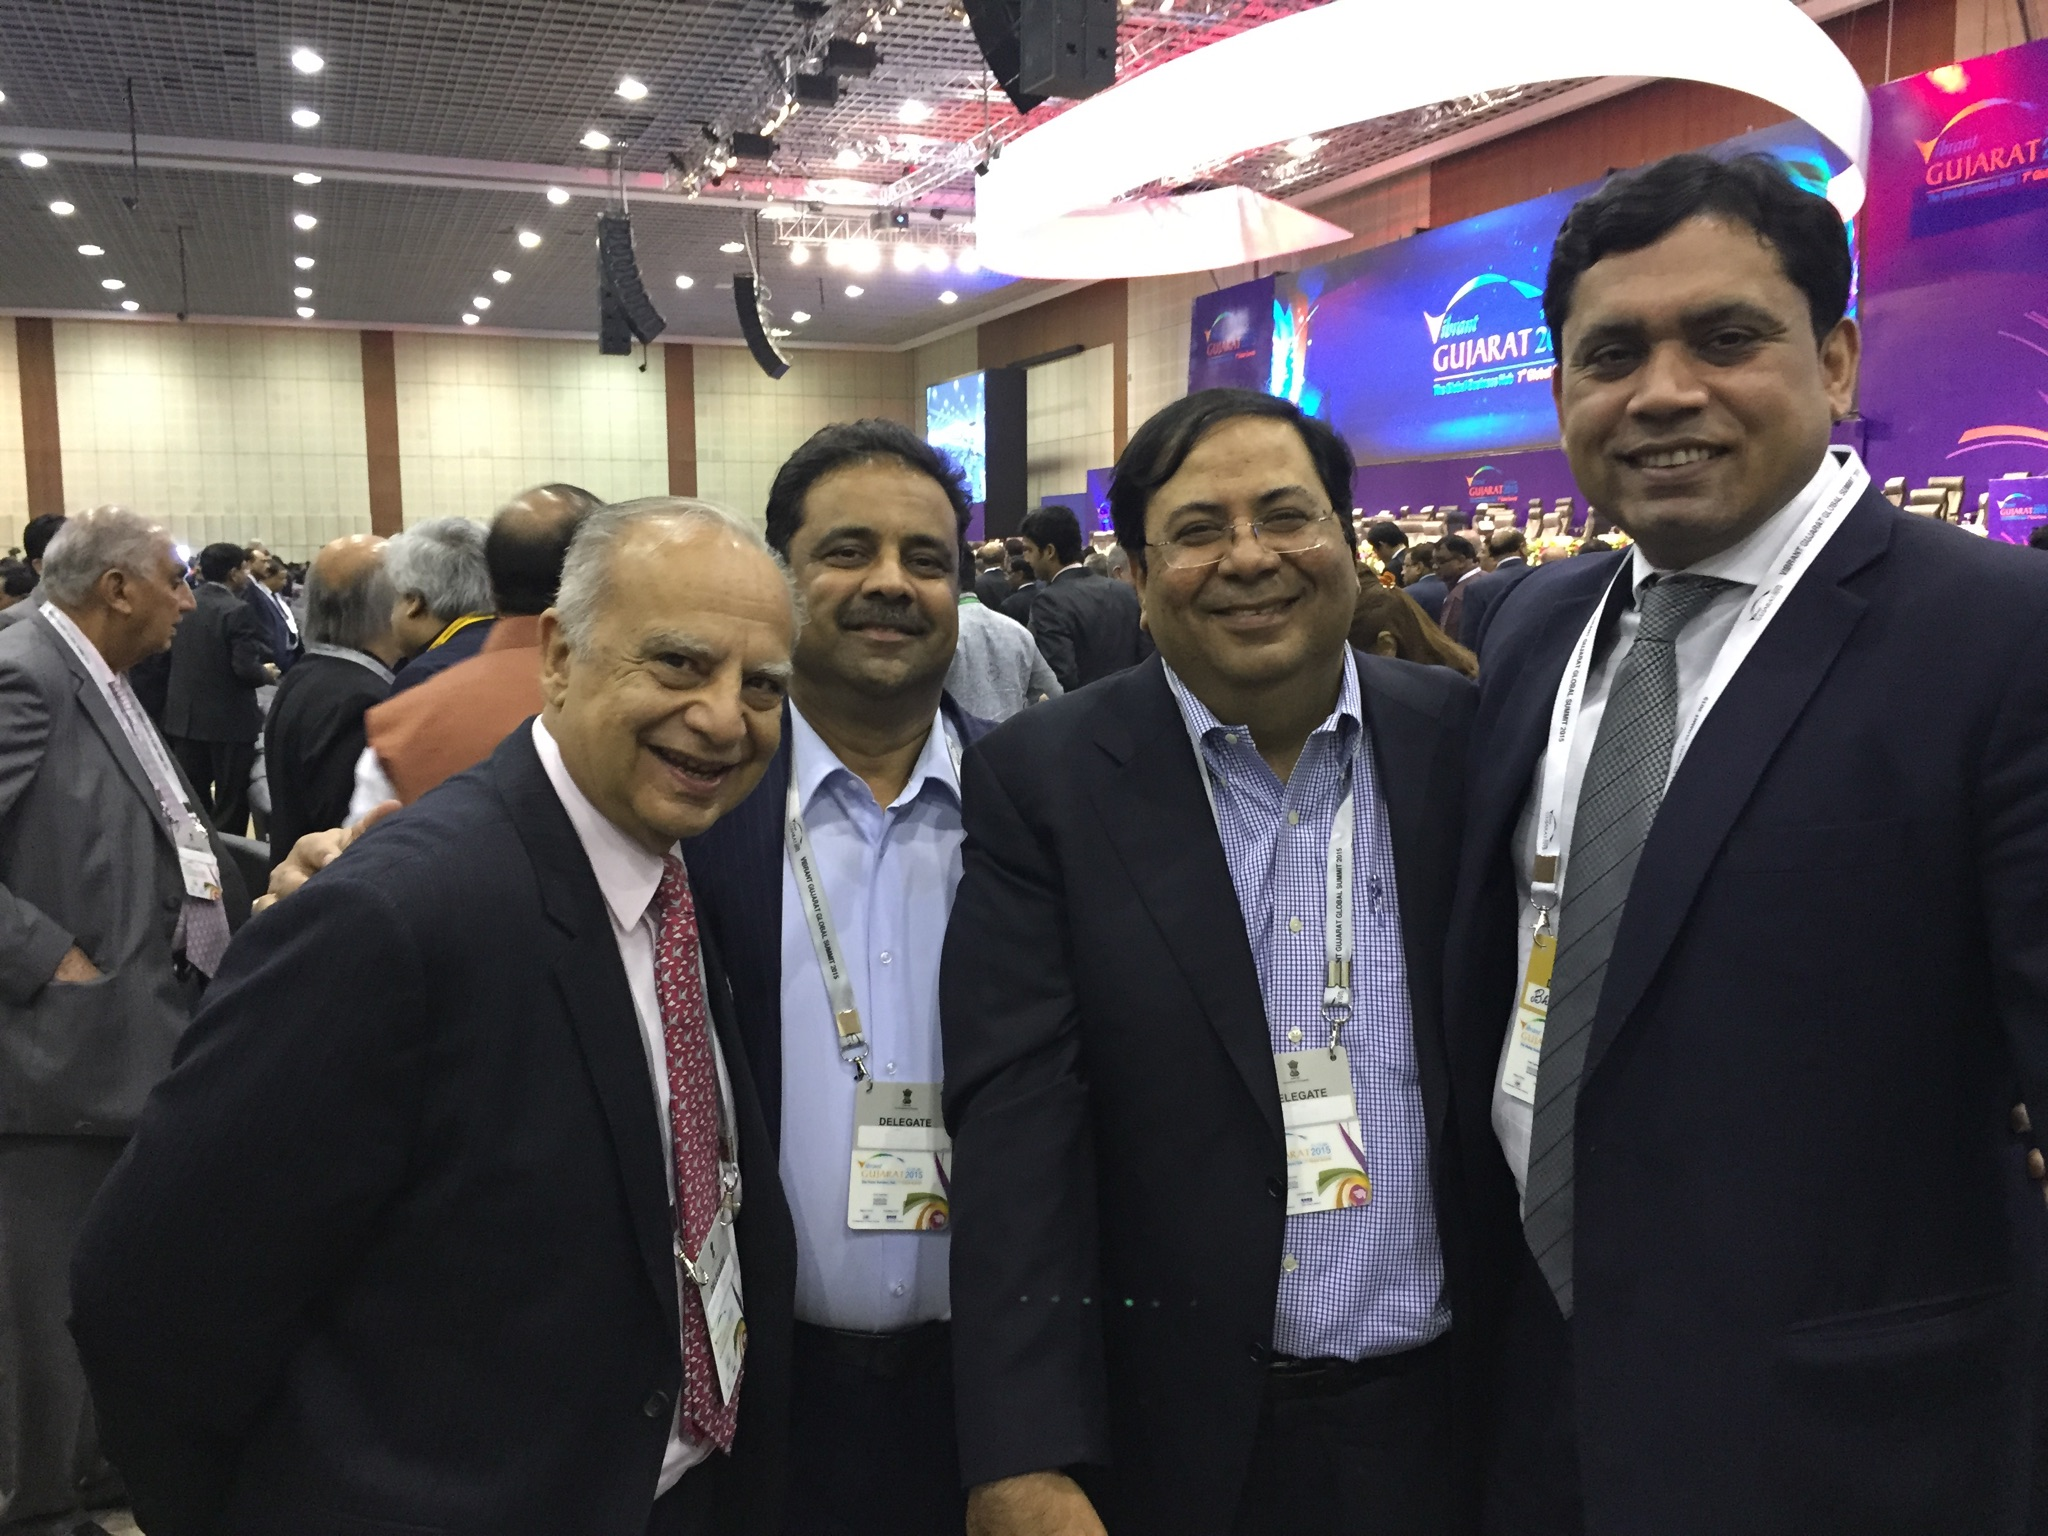 In Photos (Right to Left): Mr. Bharat Kaushal, Managing Director & CEO at Sumitomo Mitsui Banking Corporation with Suresh Nichani, Vice Chairman of RootCorp, Mr. Danny Gaekwad & Mr. Sunder Advani.